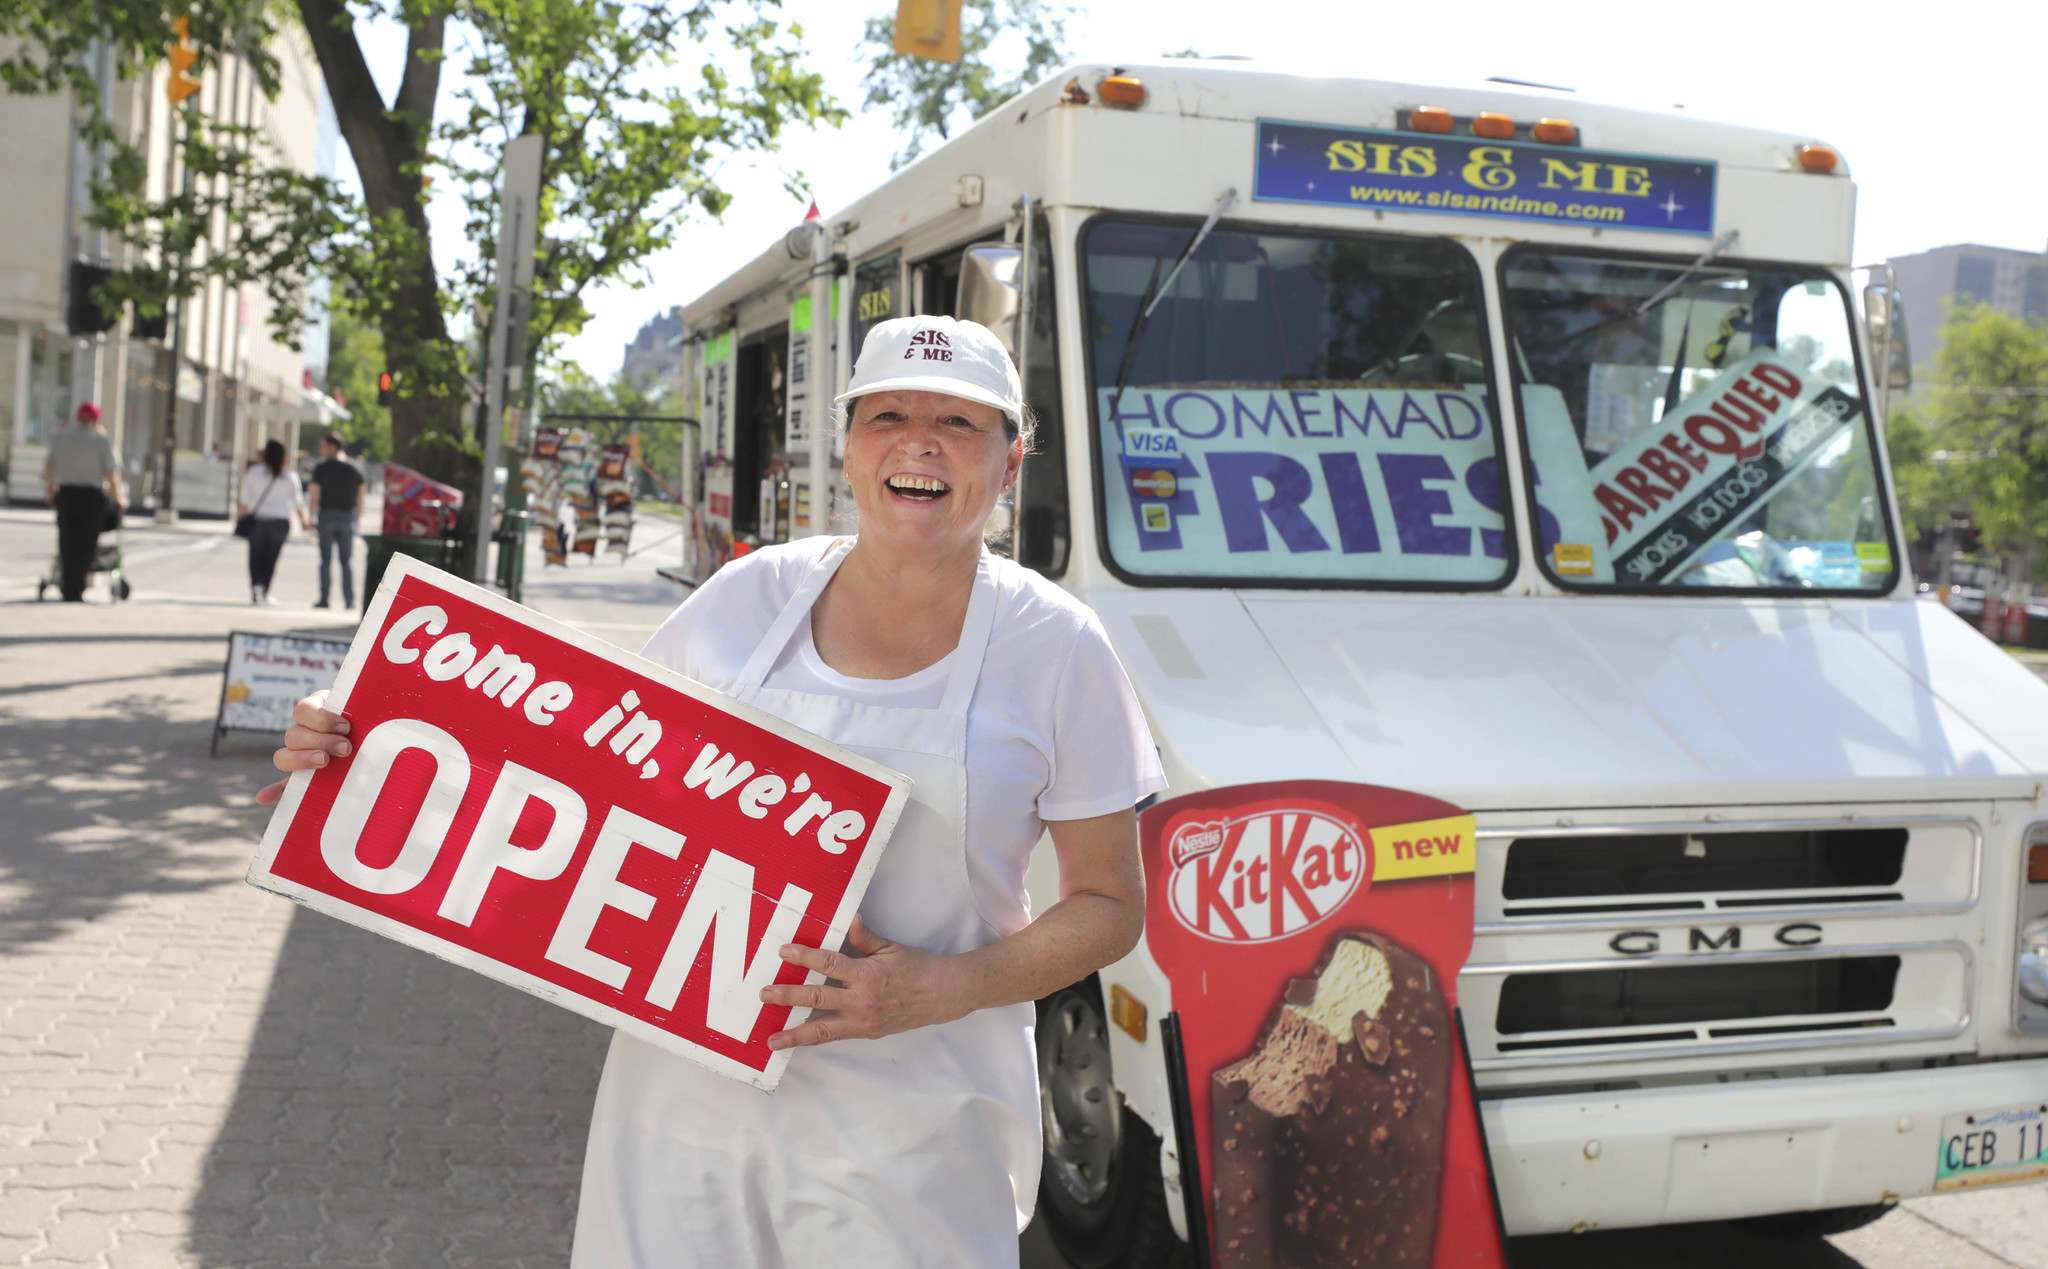 The Sis & Me food truck has been allowed back on the street after their license was delayed until May because of the pandemic. (Ruth Bonneville / Winnipeg Free Press)</p>